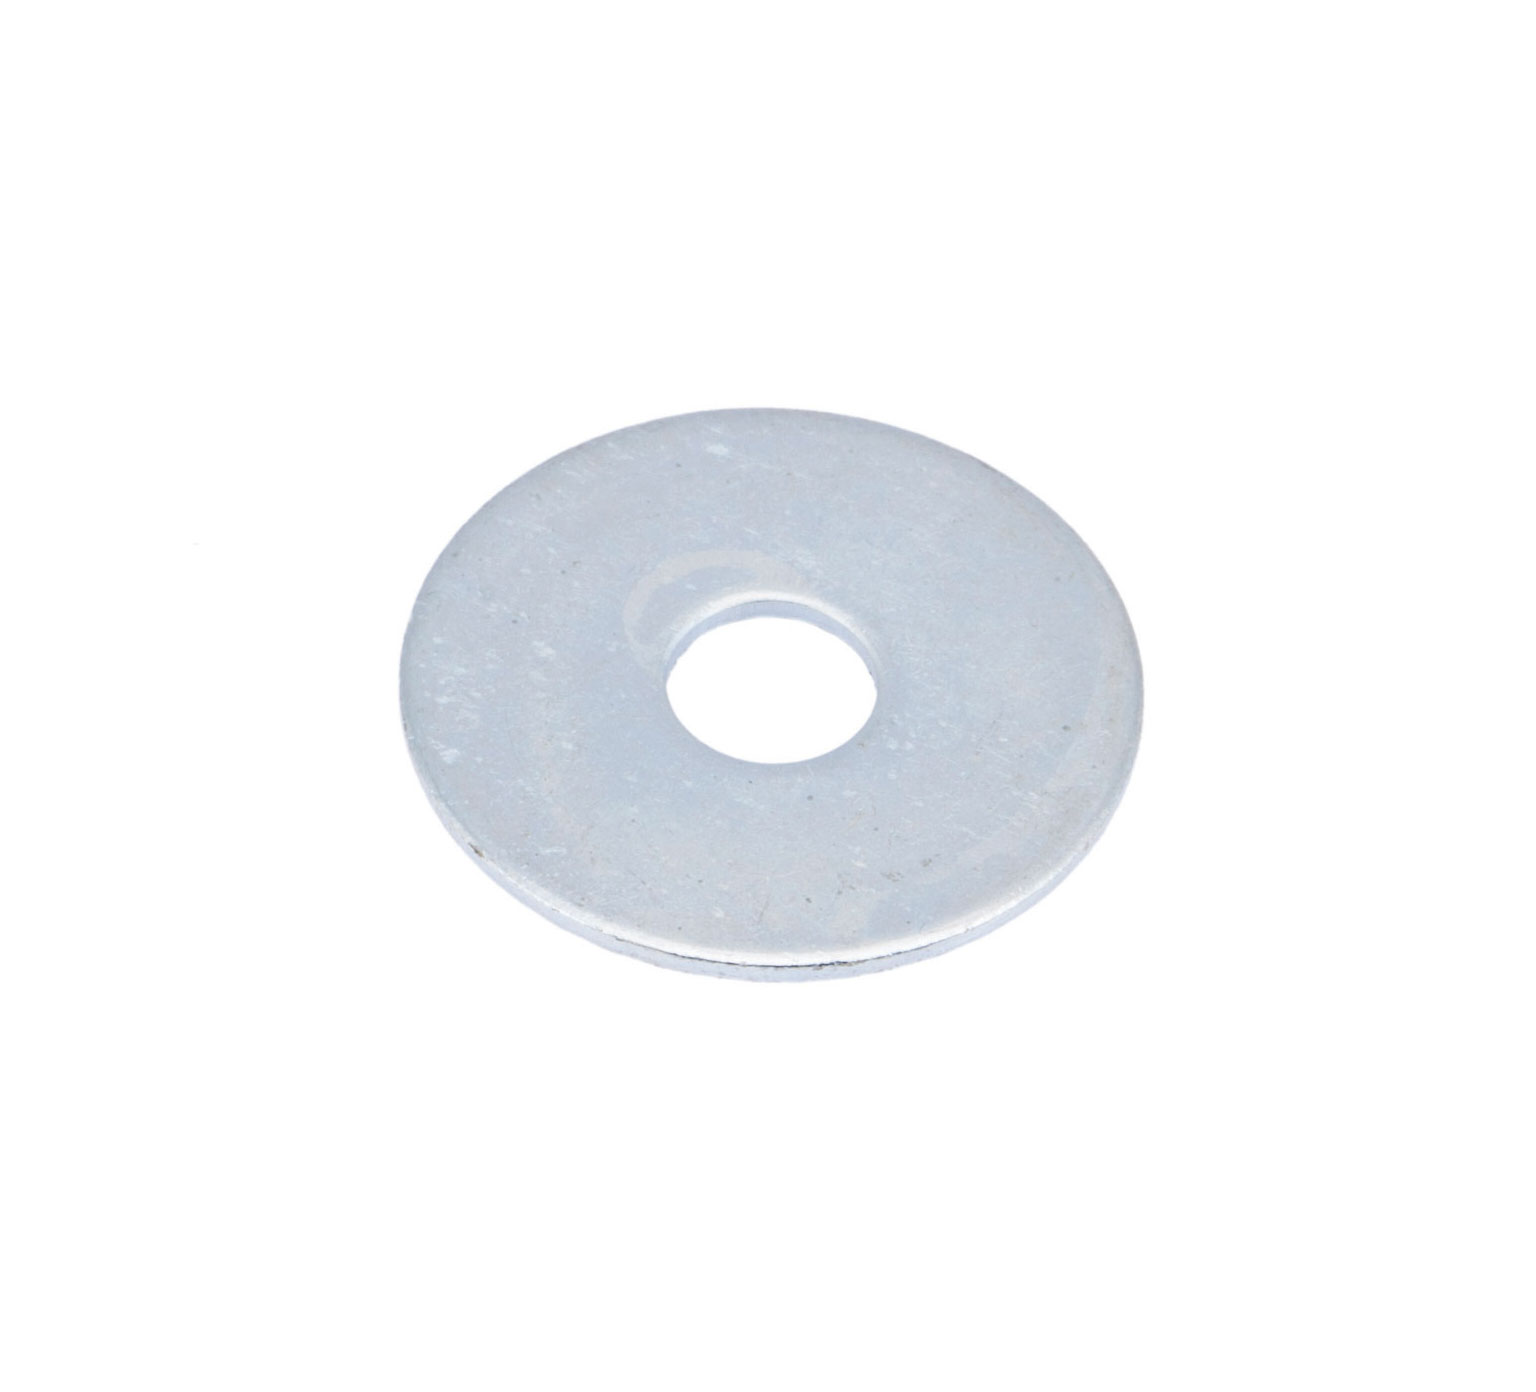 30013 Steel Flat Washer - 1.26 x 0.01 in alt 1